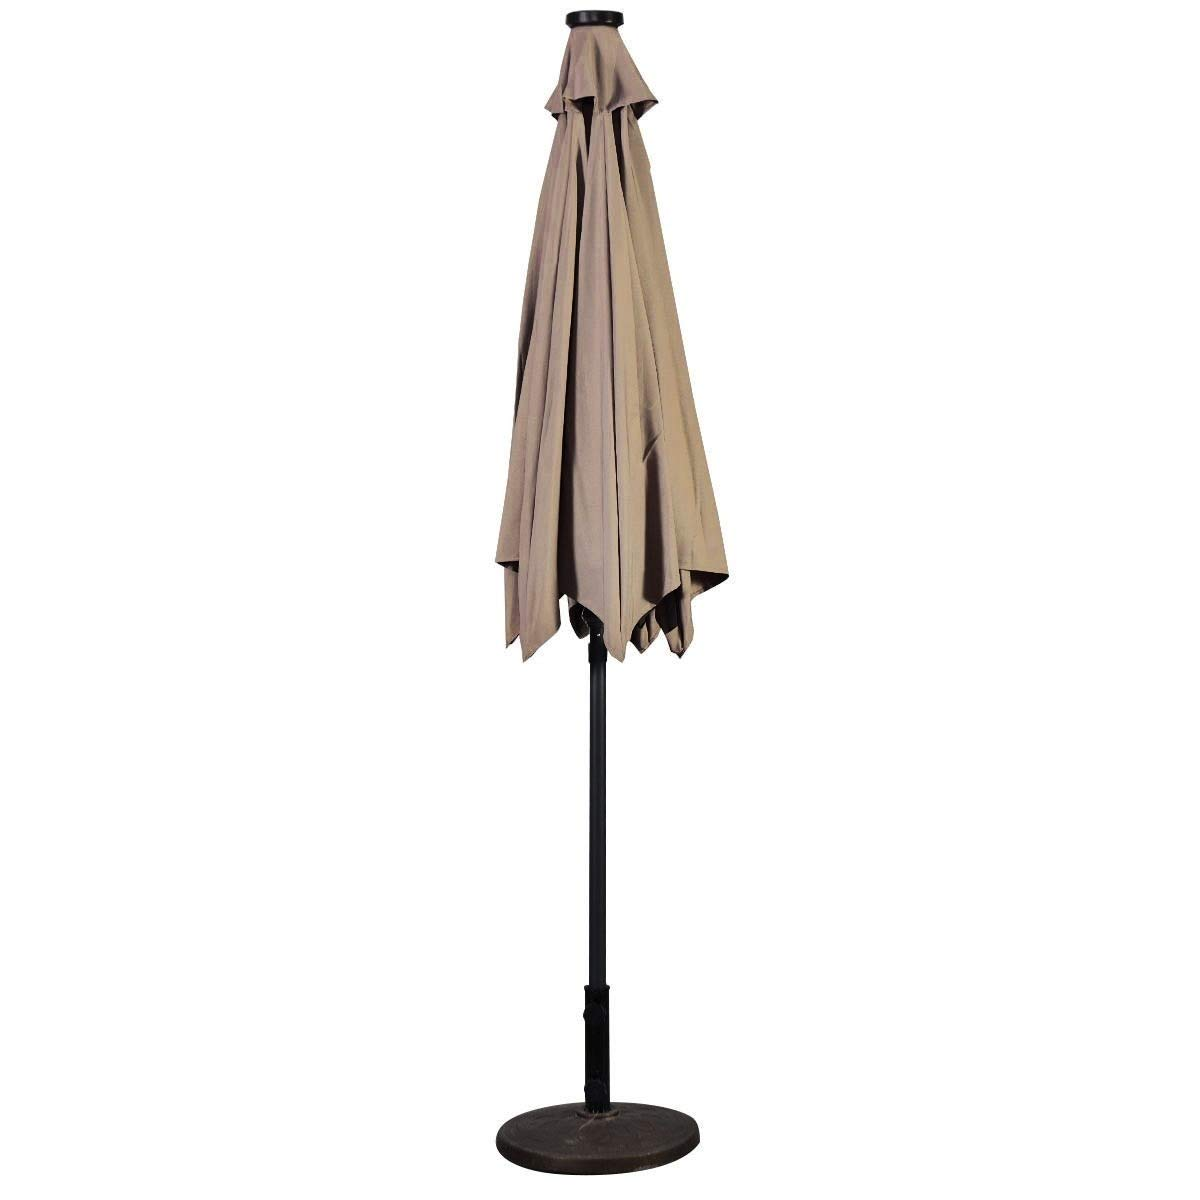 Lucky-gift - Beige 9 ft Patio LED Solar Umbrella with Crank - Outdoor Umbrella Cover Uv Protection Tablecloth - Outdoor Umbrella with Led Lights - Umbrella Solar Light Lighting Crank Hand Uv by Lucky-gift